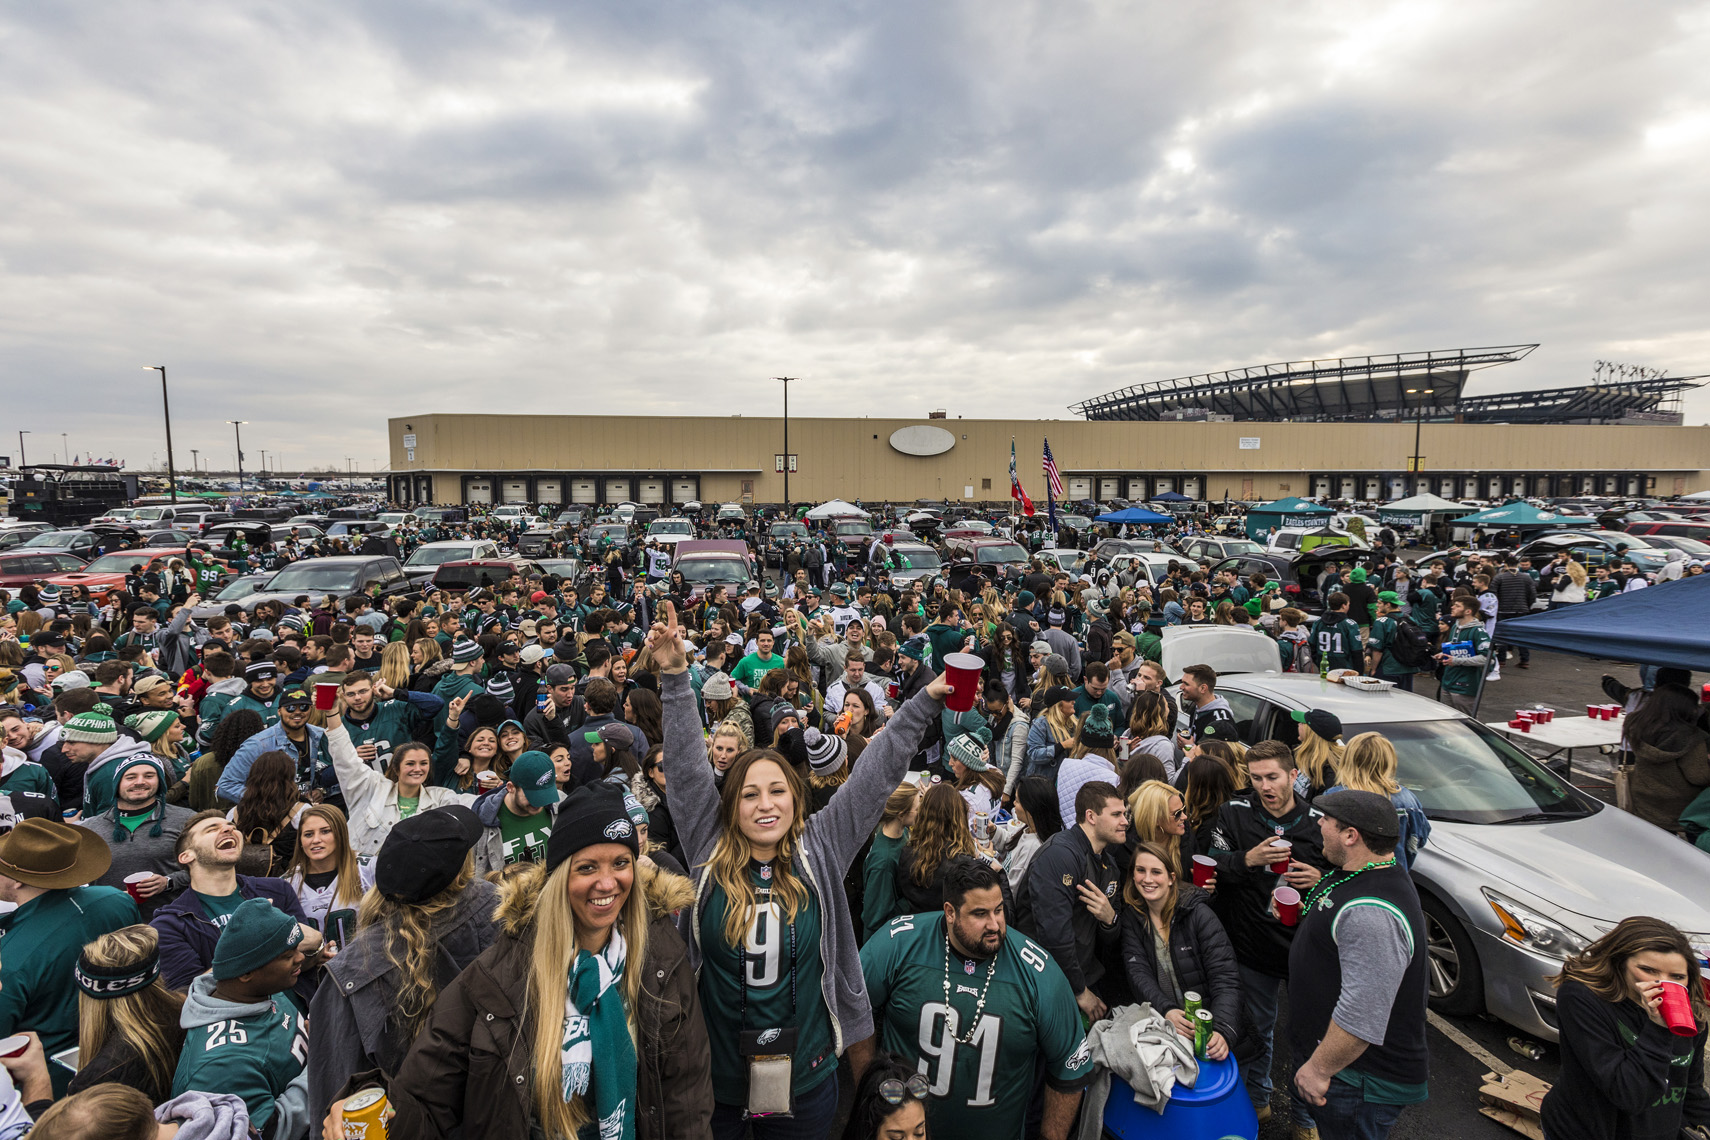 Eagles NFC Championship Tailgate